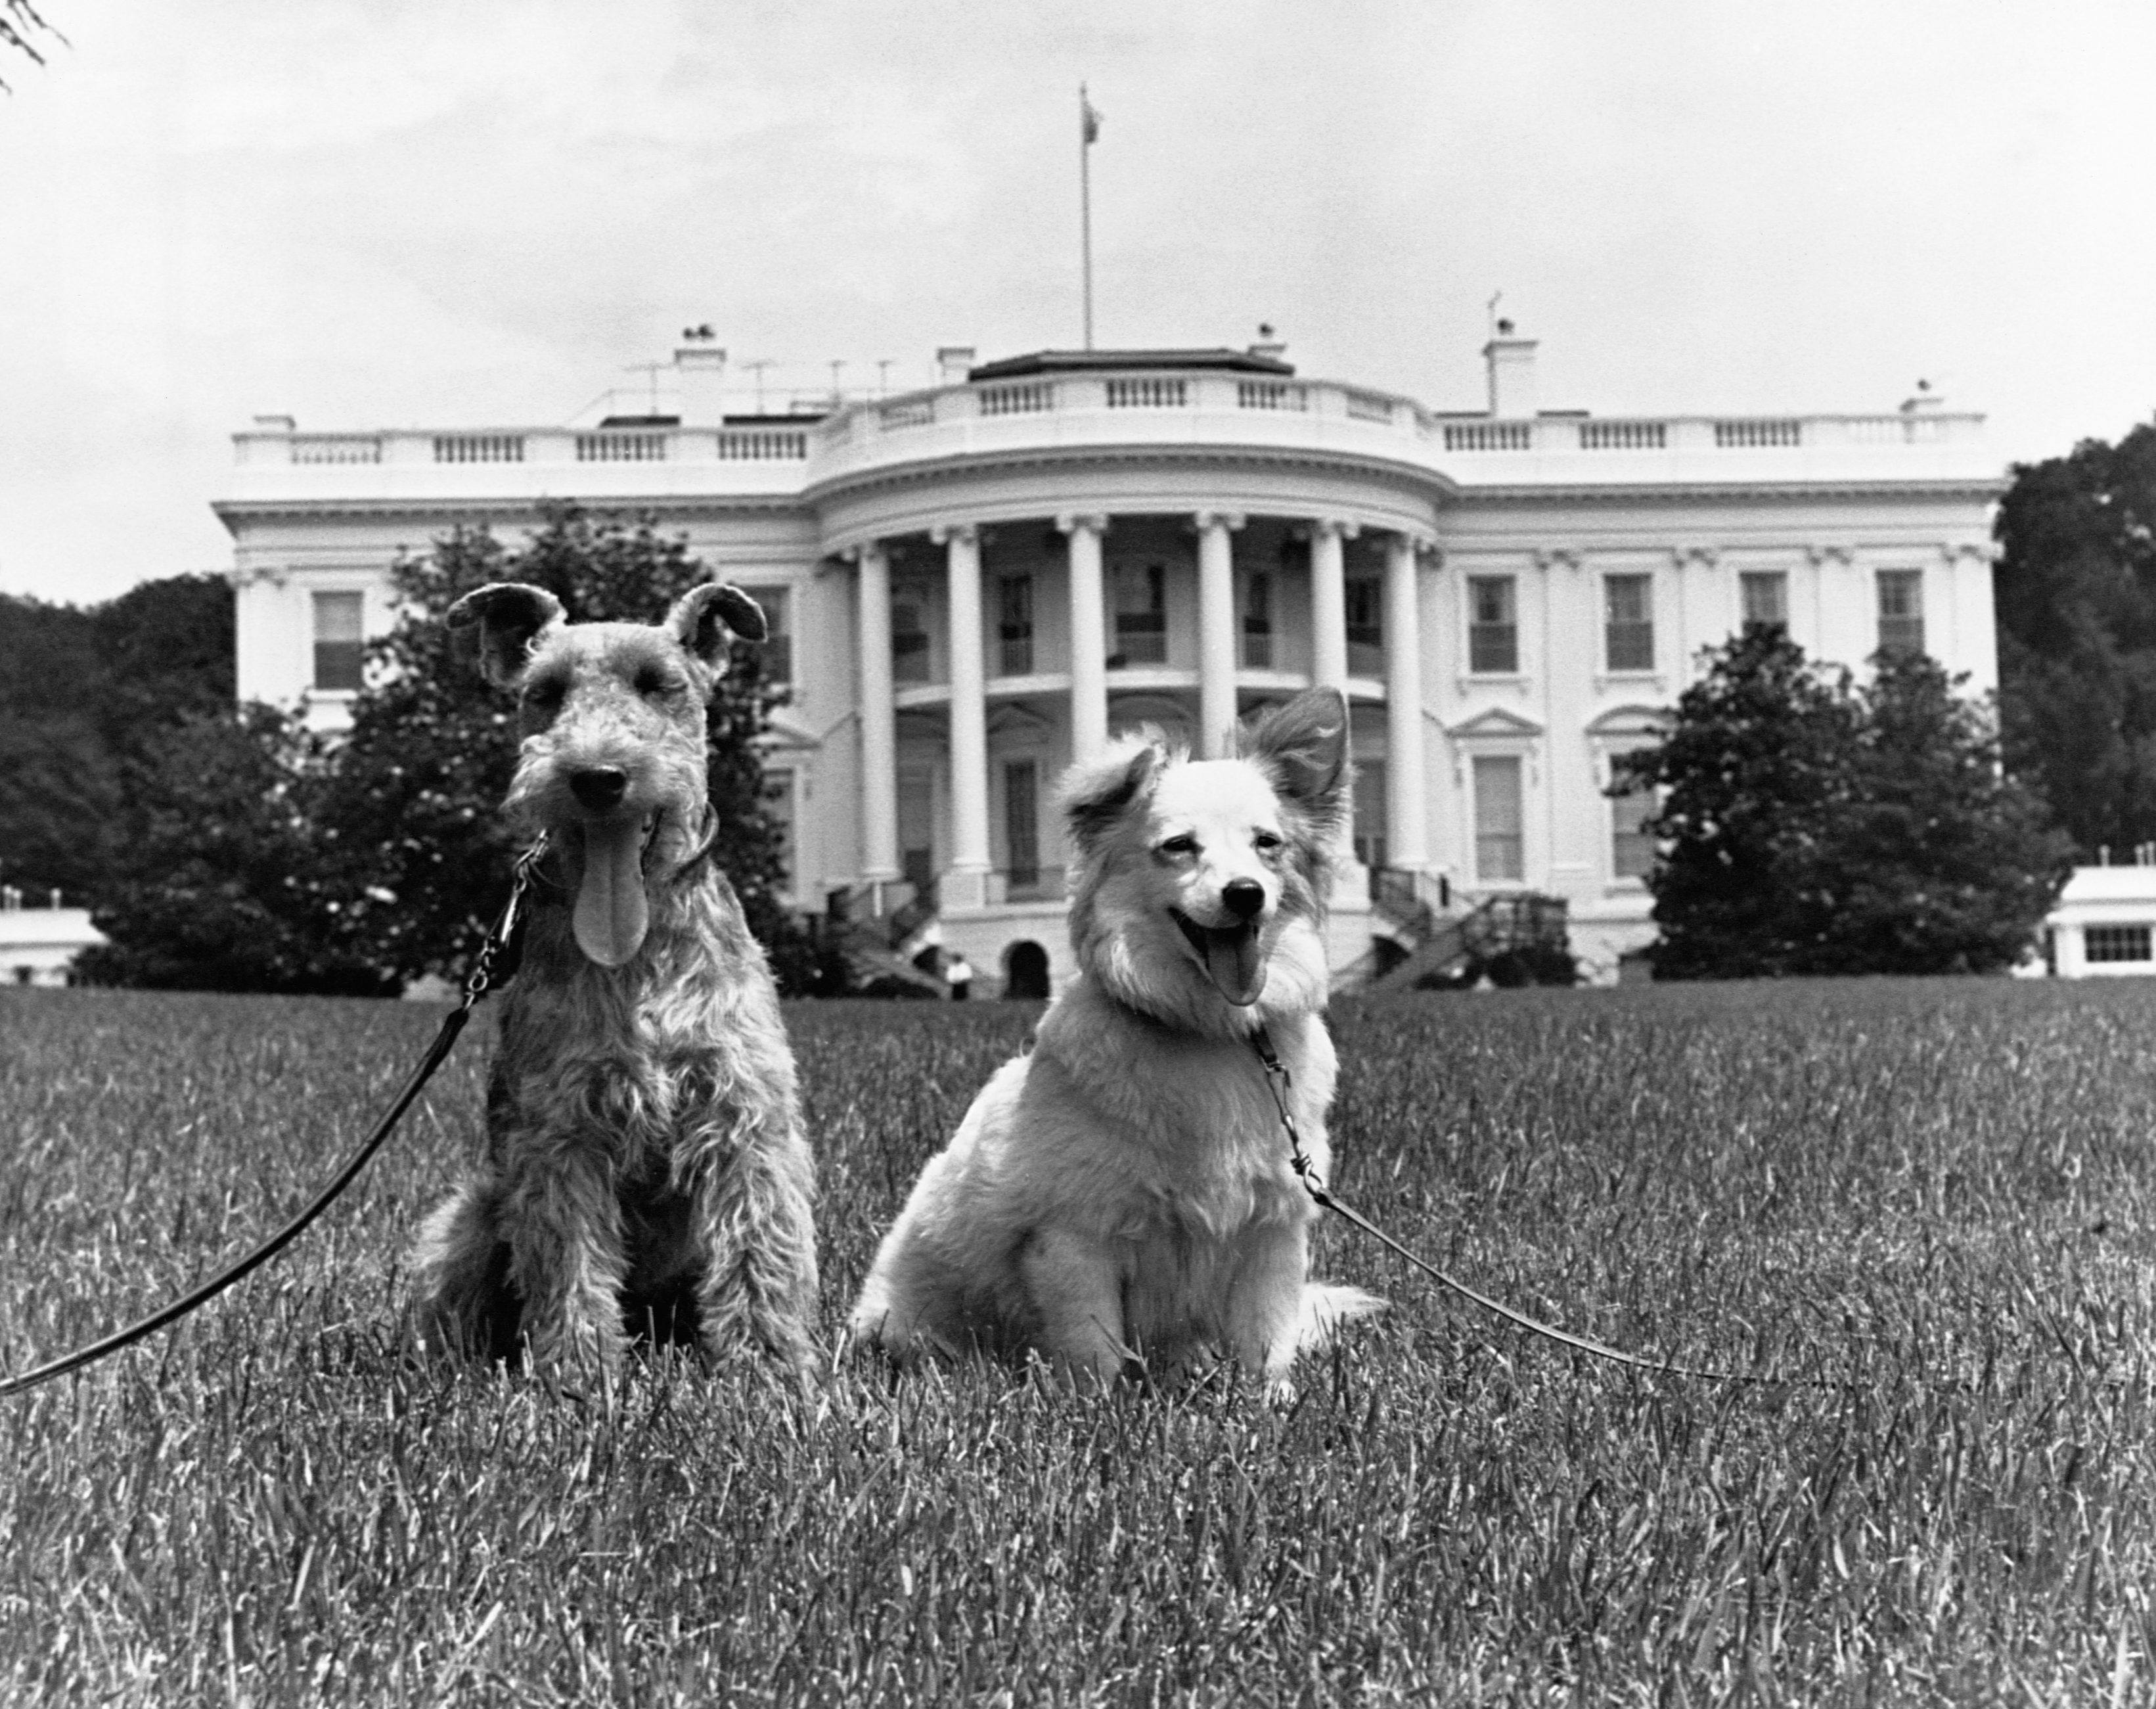 Can You Match the U.S. President with His Dog?